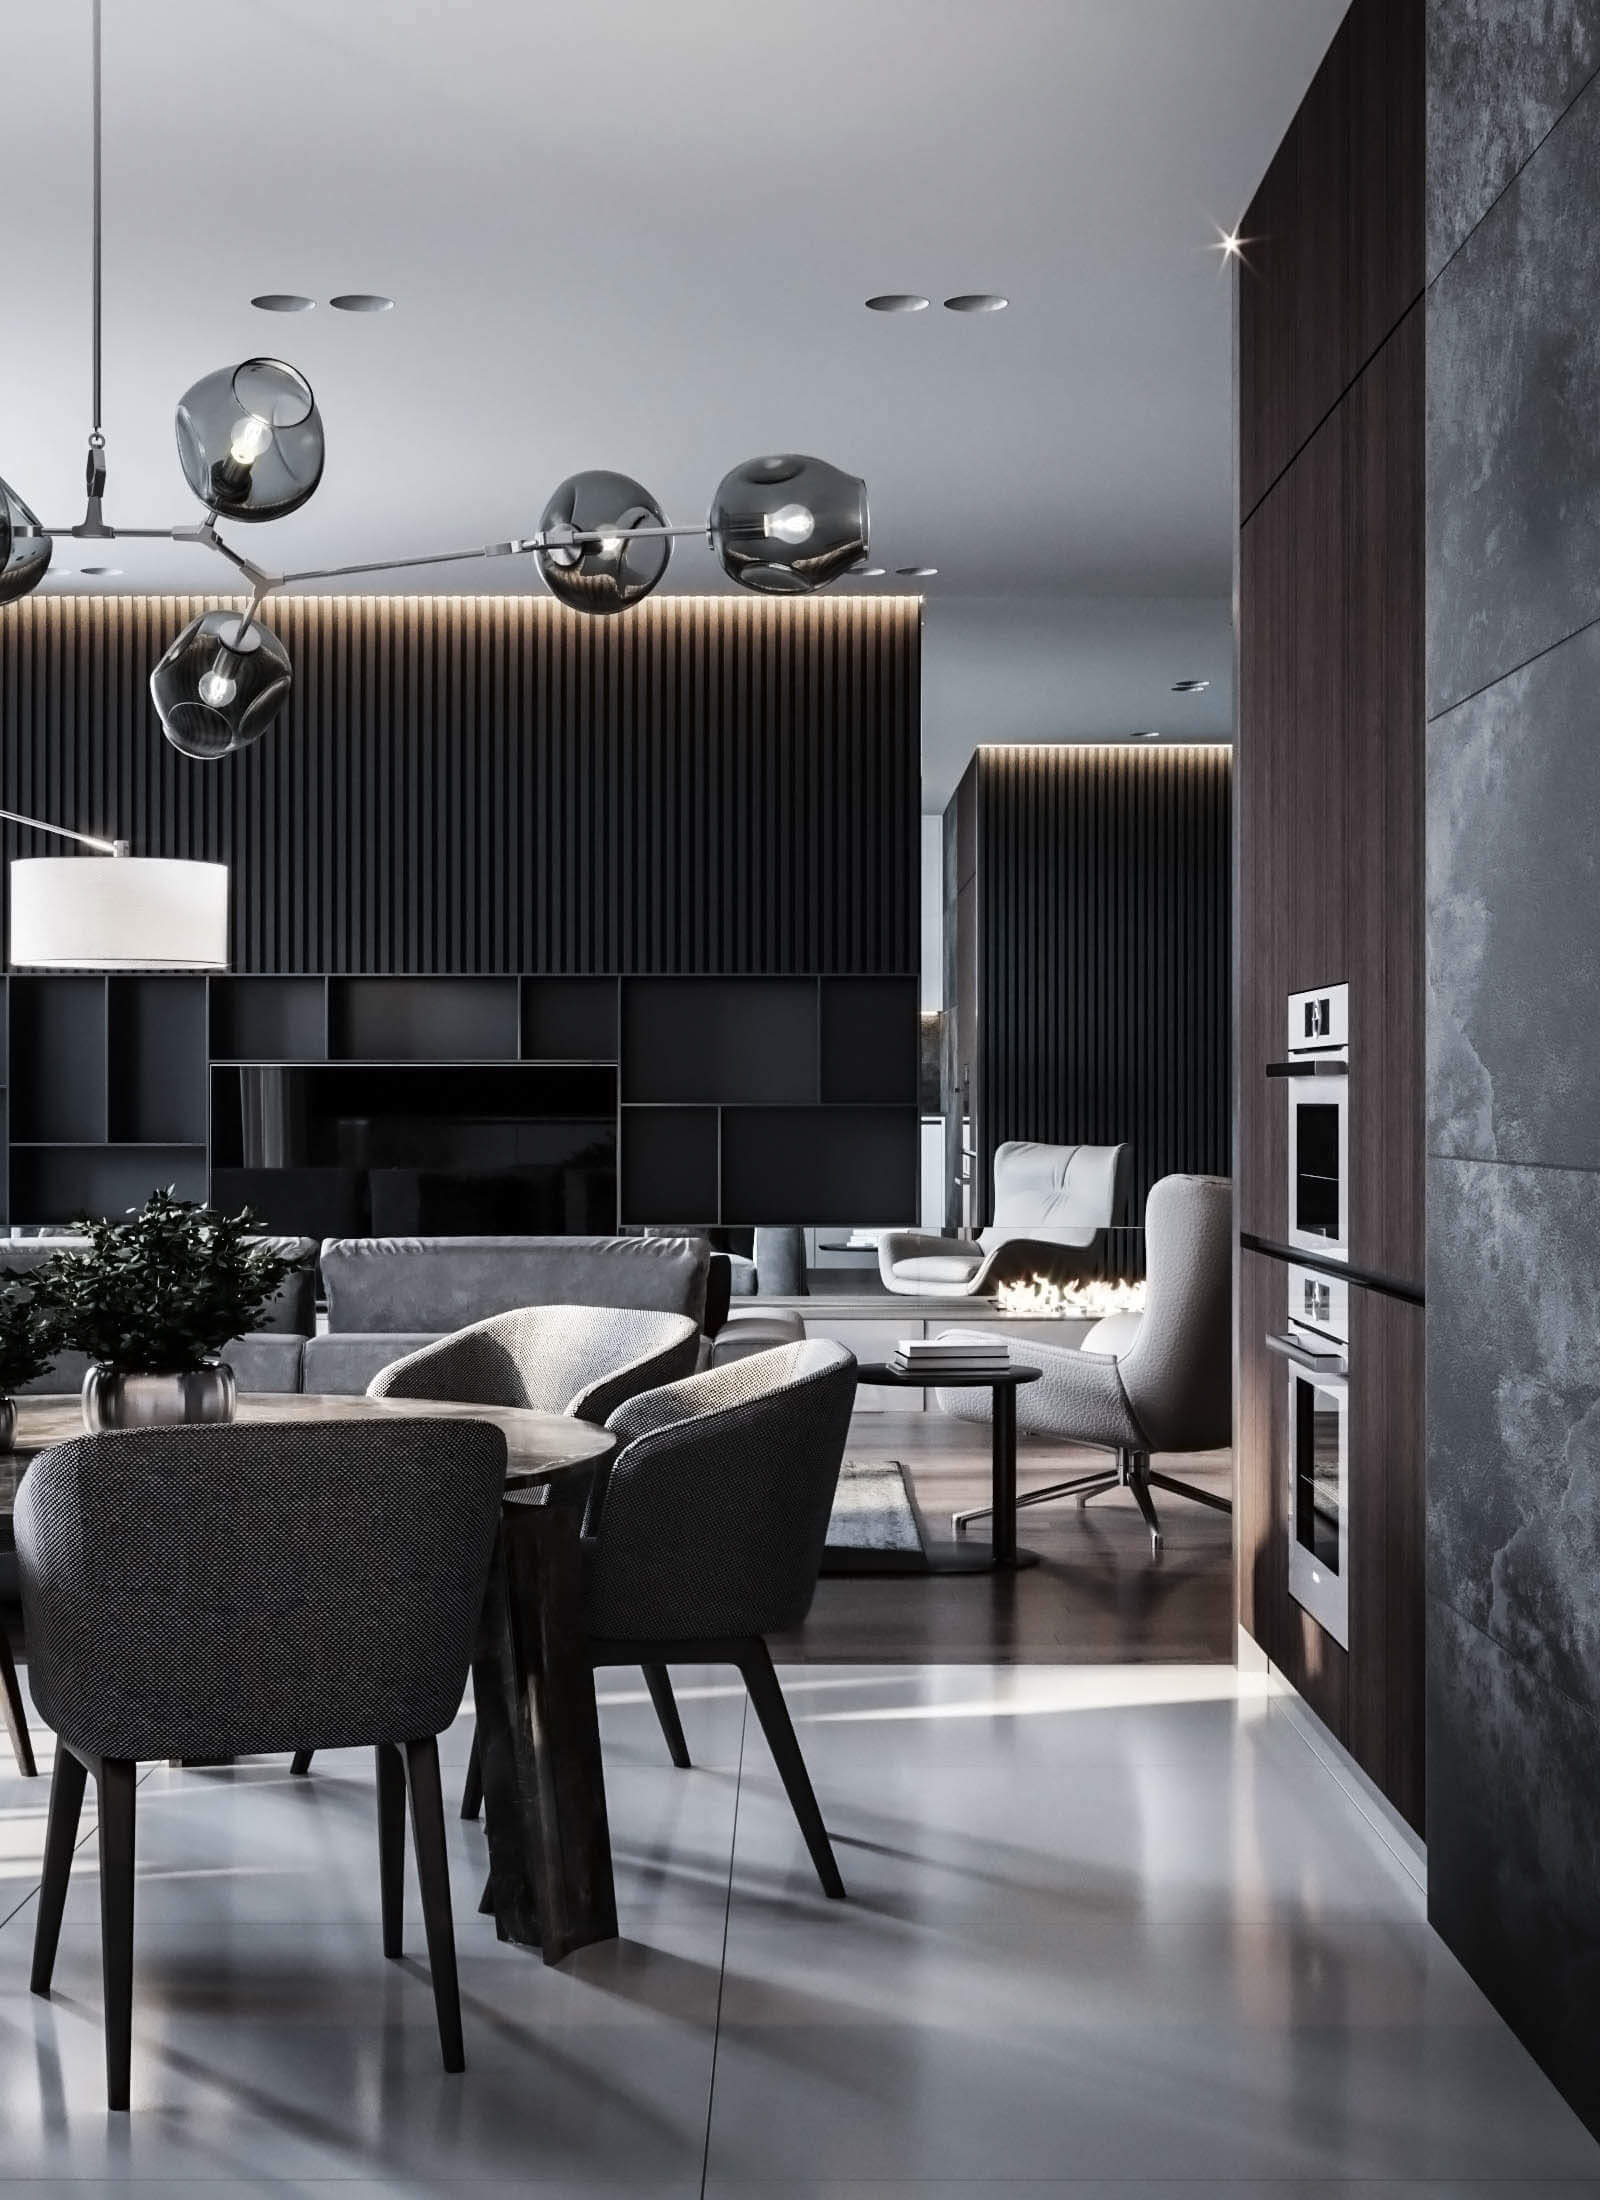 Dubrovka apartment dining & living room - cgi visualization